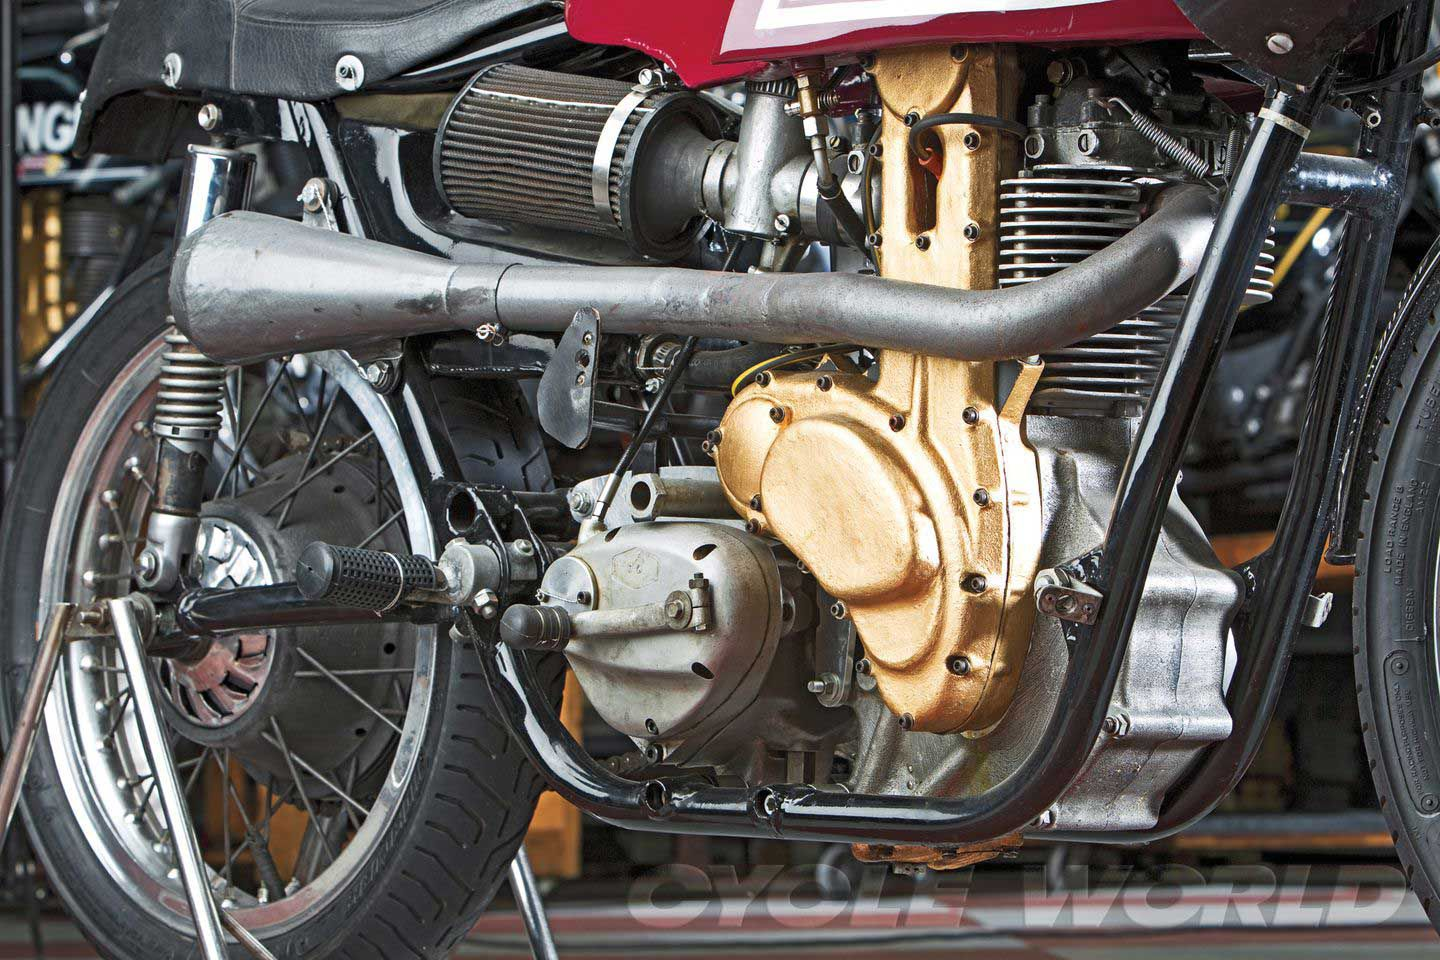 What will happen to those loved and then highly valued motorcycles once the market has moved on to the next era?